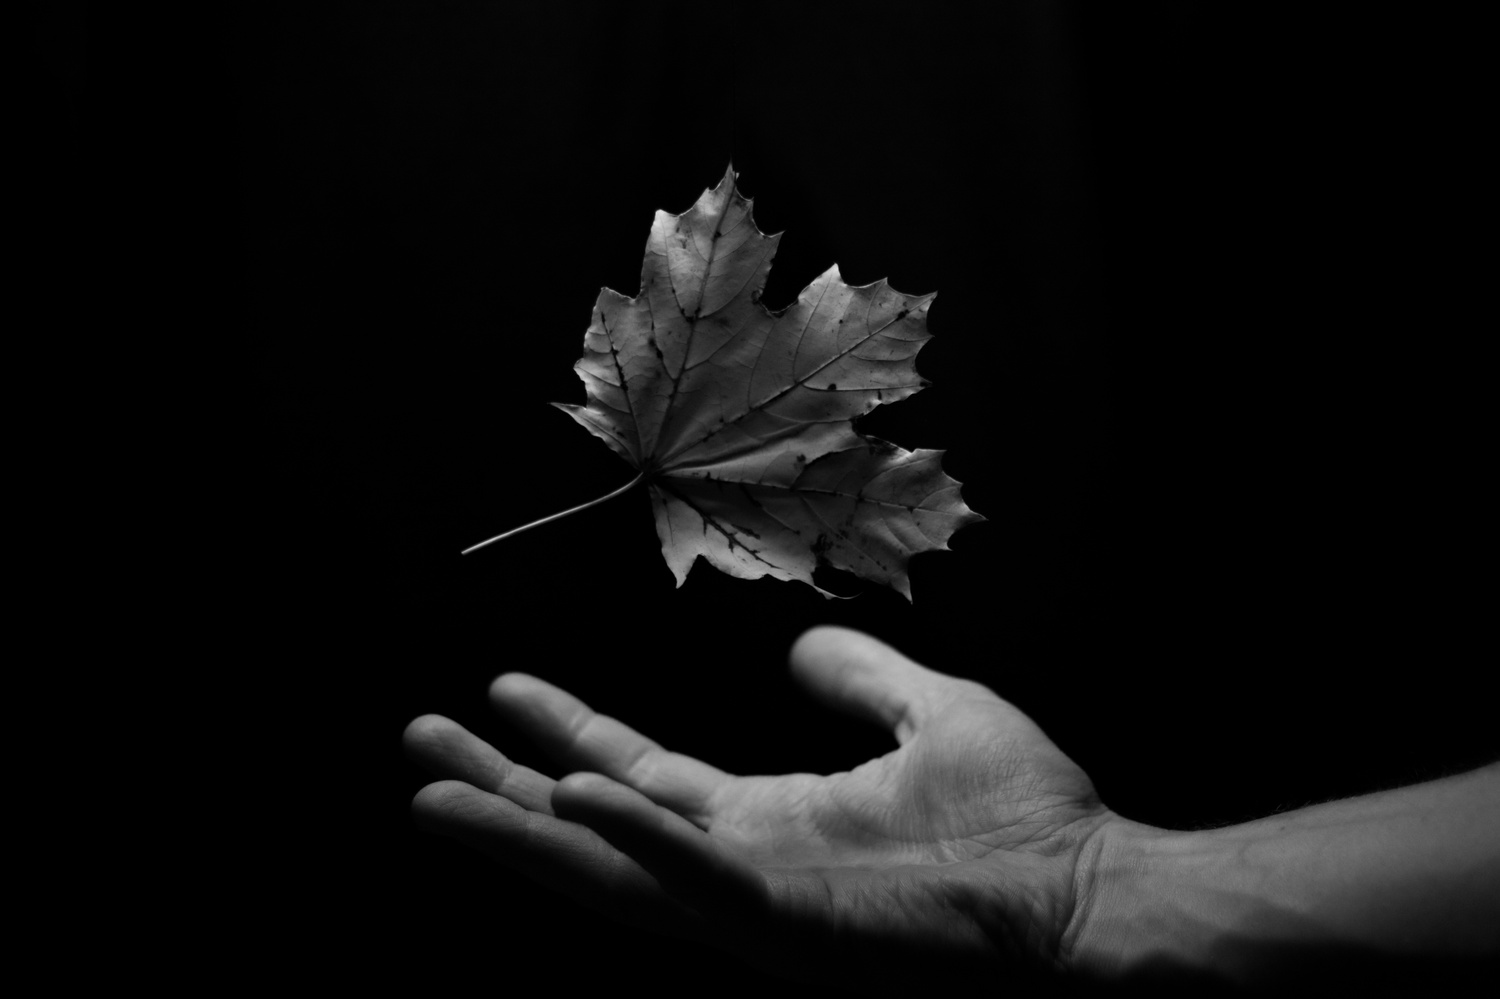 Leaf Levitation in Black and White by Adam Schubert